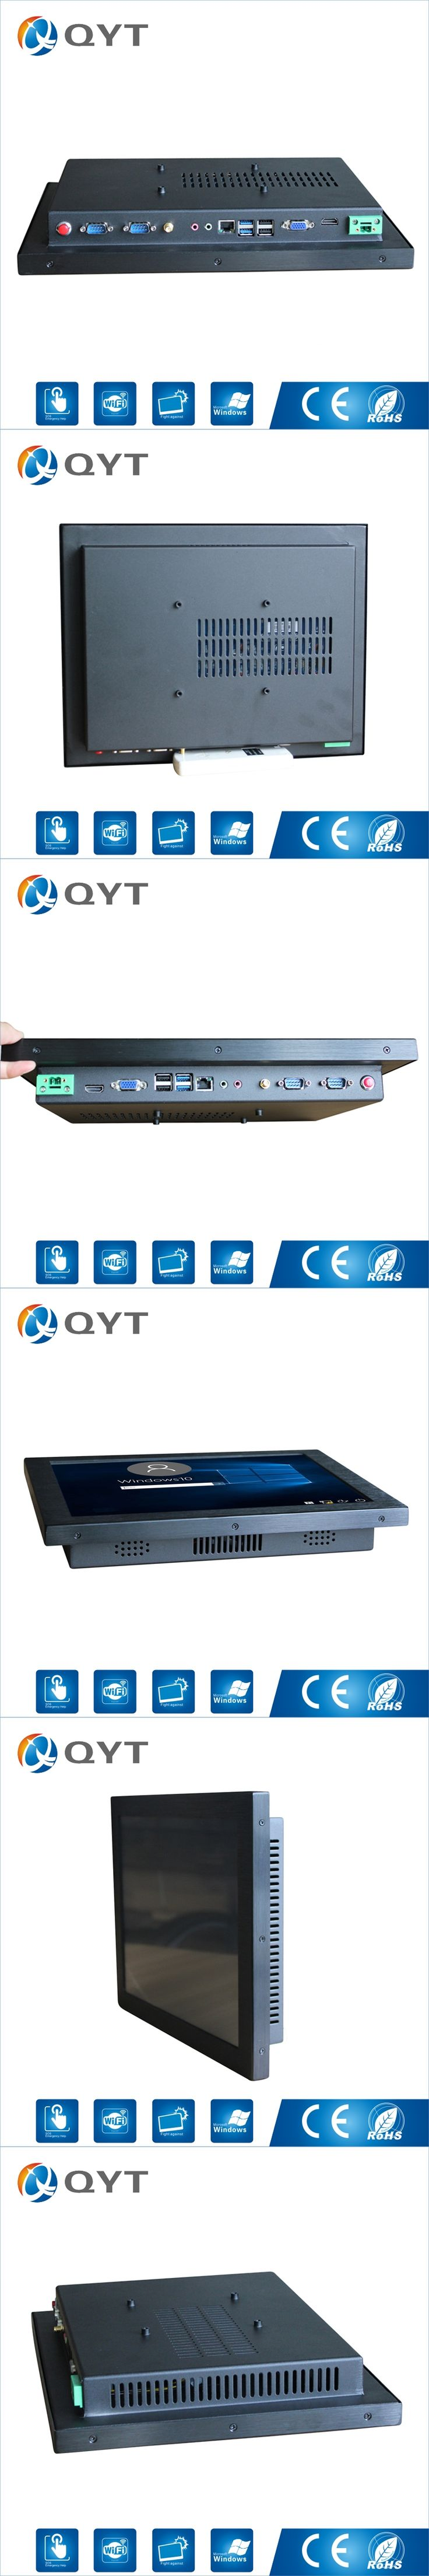 Indutrial Computer 15 Inch i5 6200U 4GB RAM 32G SSD Led Touch Screen pc All In One with 4*USB HDMI/2*RS232/RJ45/WIFI